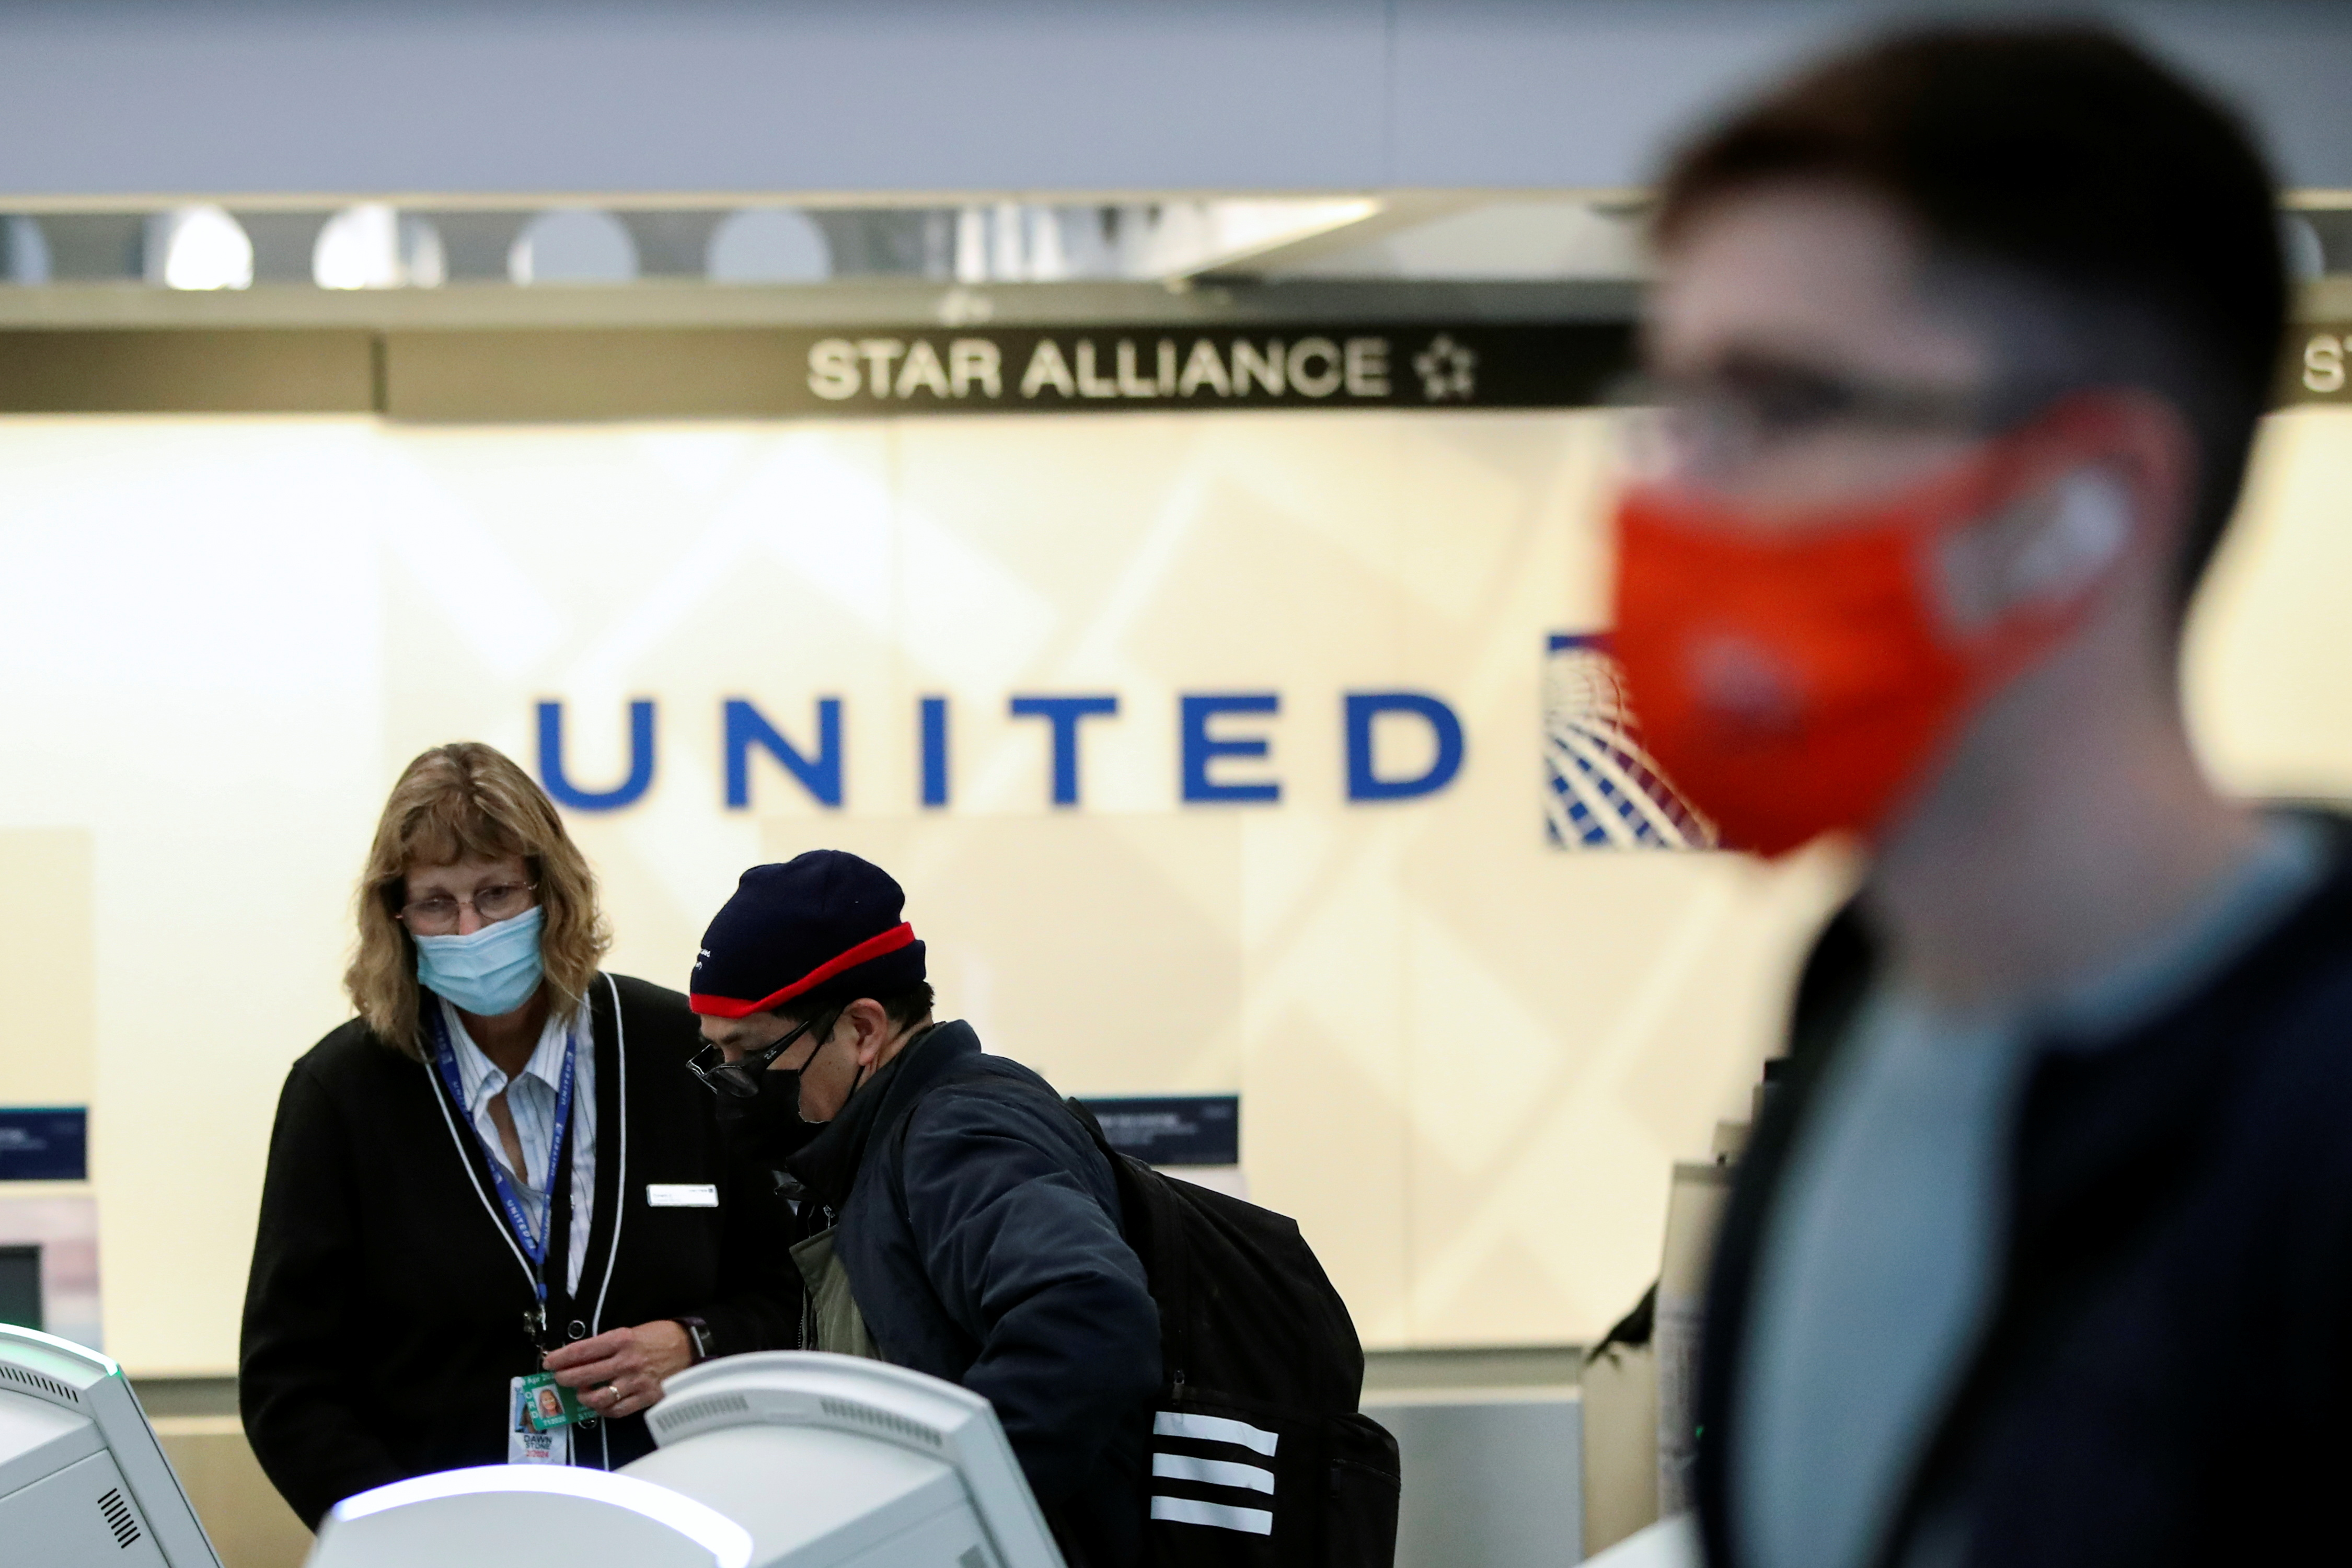 United Airlines agent helps a customer check-in for his flight at O'Hare International Airport ahead of the Thanksgiving holiday during the coronavirus disease (COVID-19) pandemic, in Chicago, Illinois, U.S. November 25, 2020. REUTERS/Kamil Krzaczynski